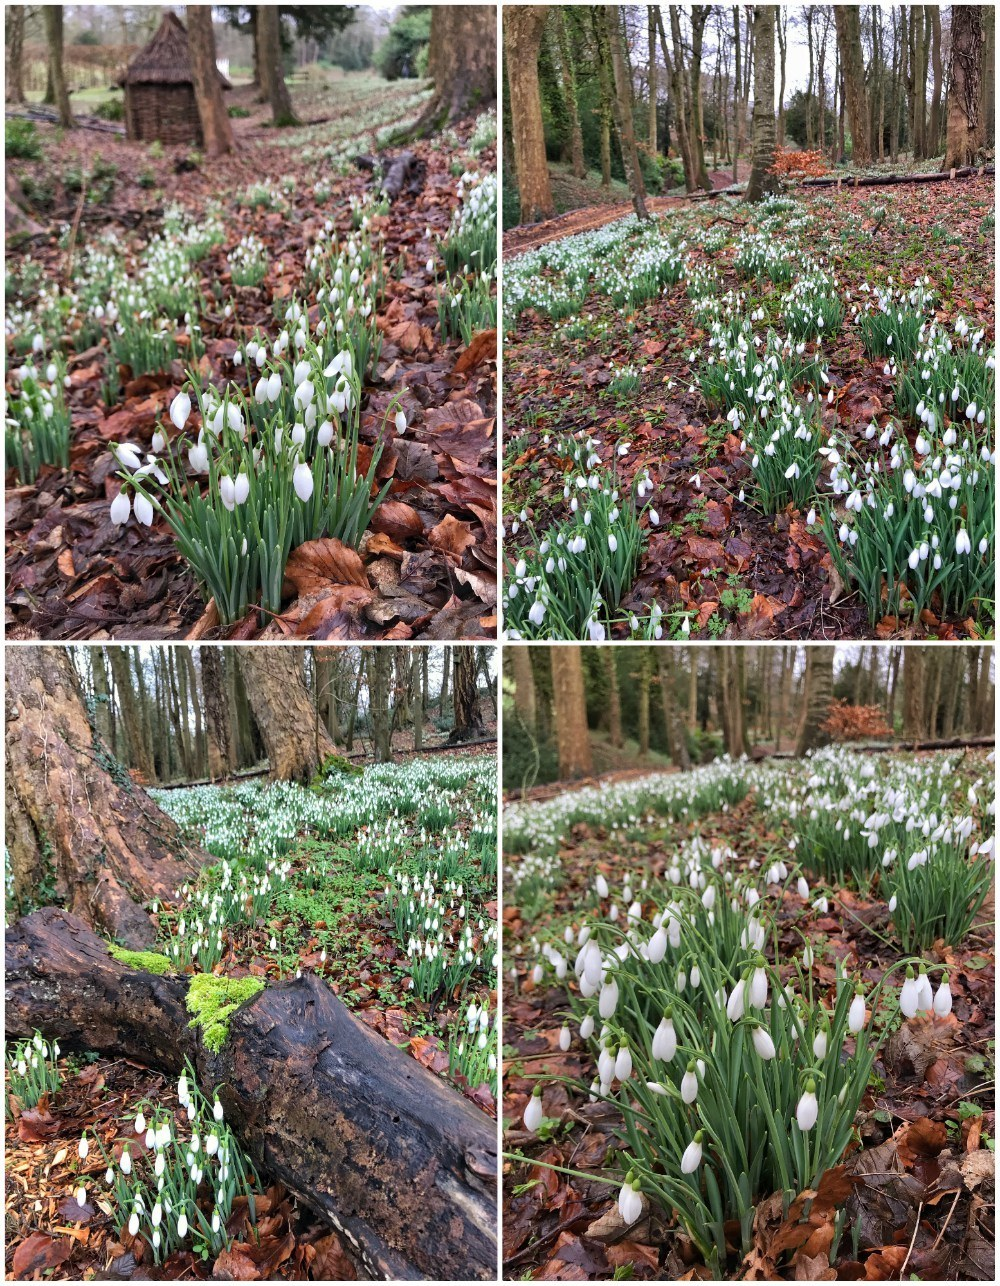 Snowdrops at Painswick Rococo Gardens in the Cotswolds Photo- Heatheronhertravels.com